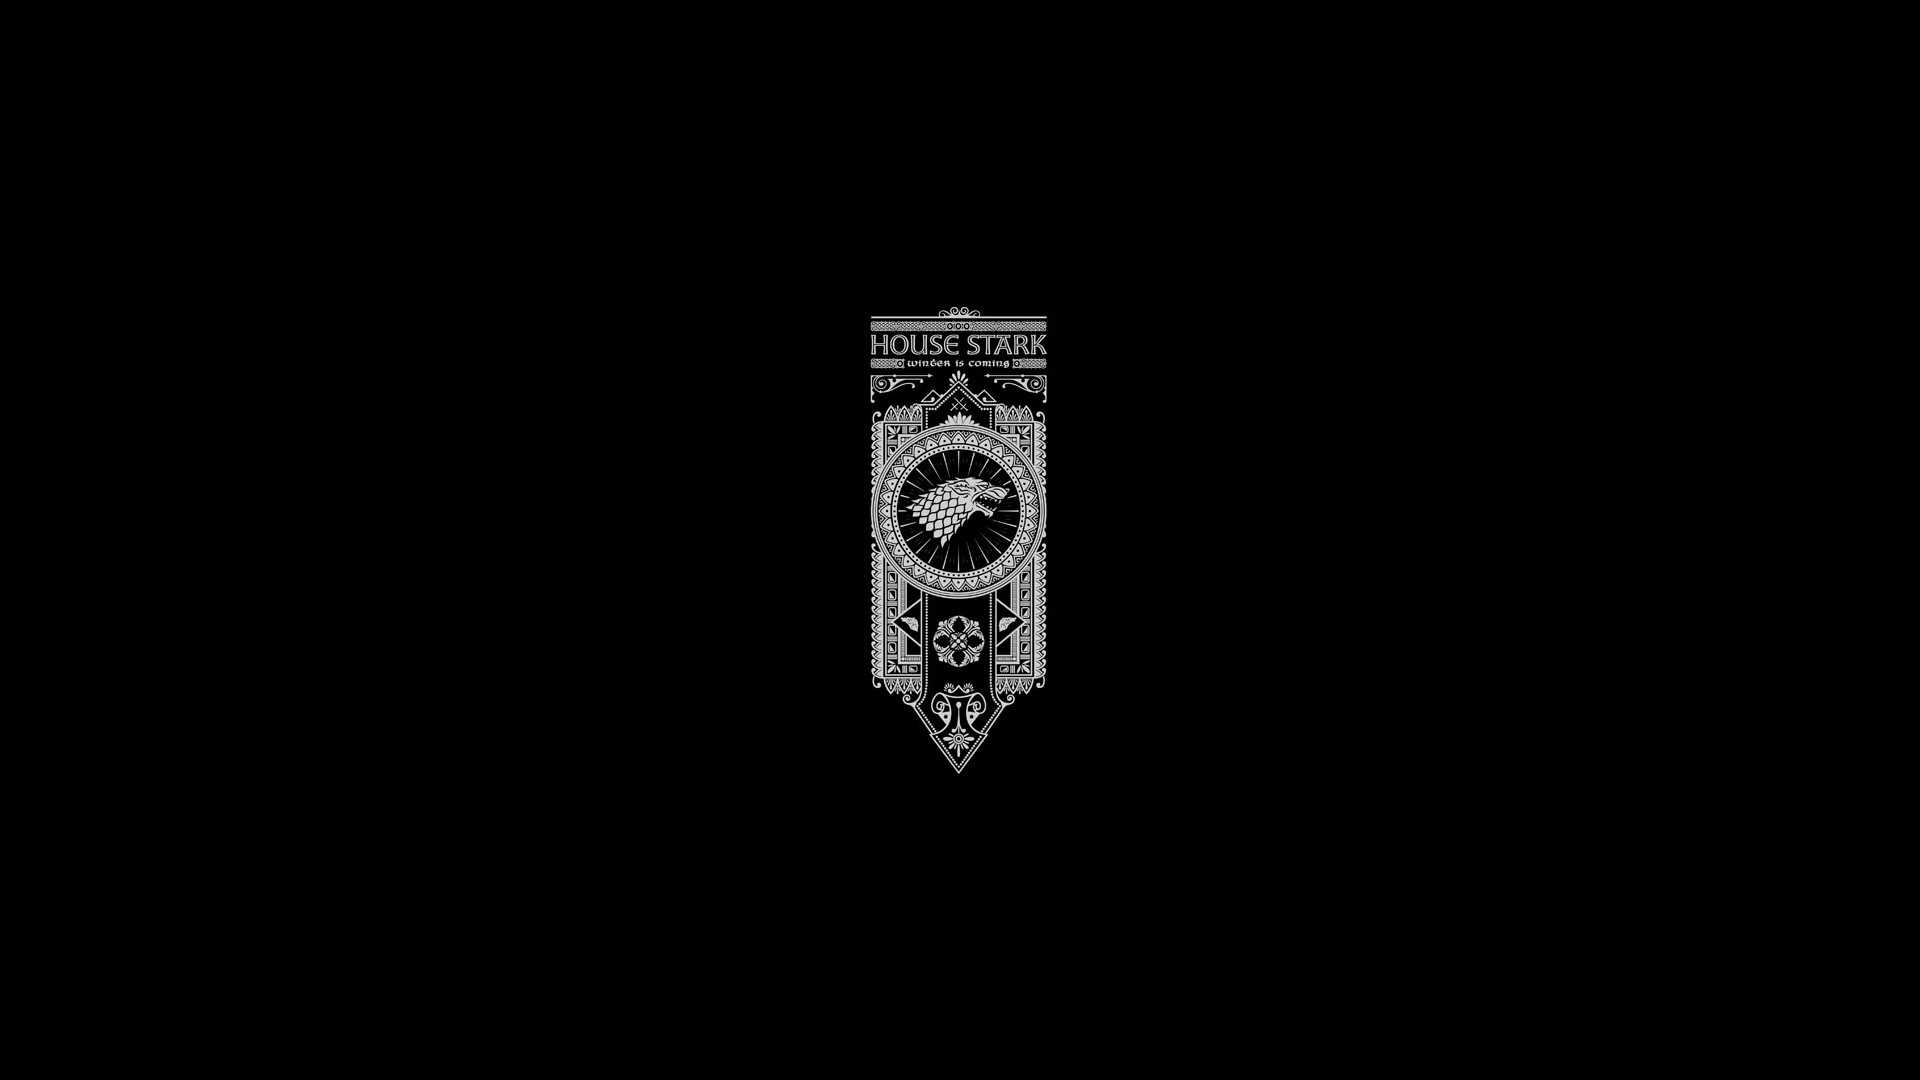 1920x1080 House Stark - Game Of Thrones 835805